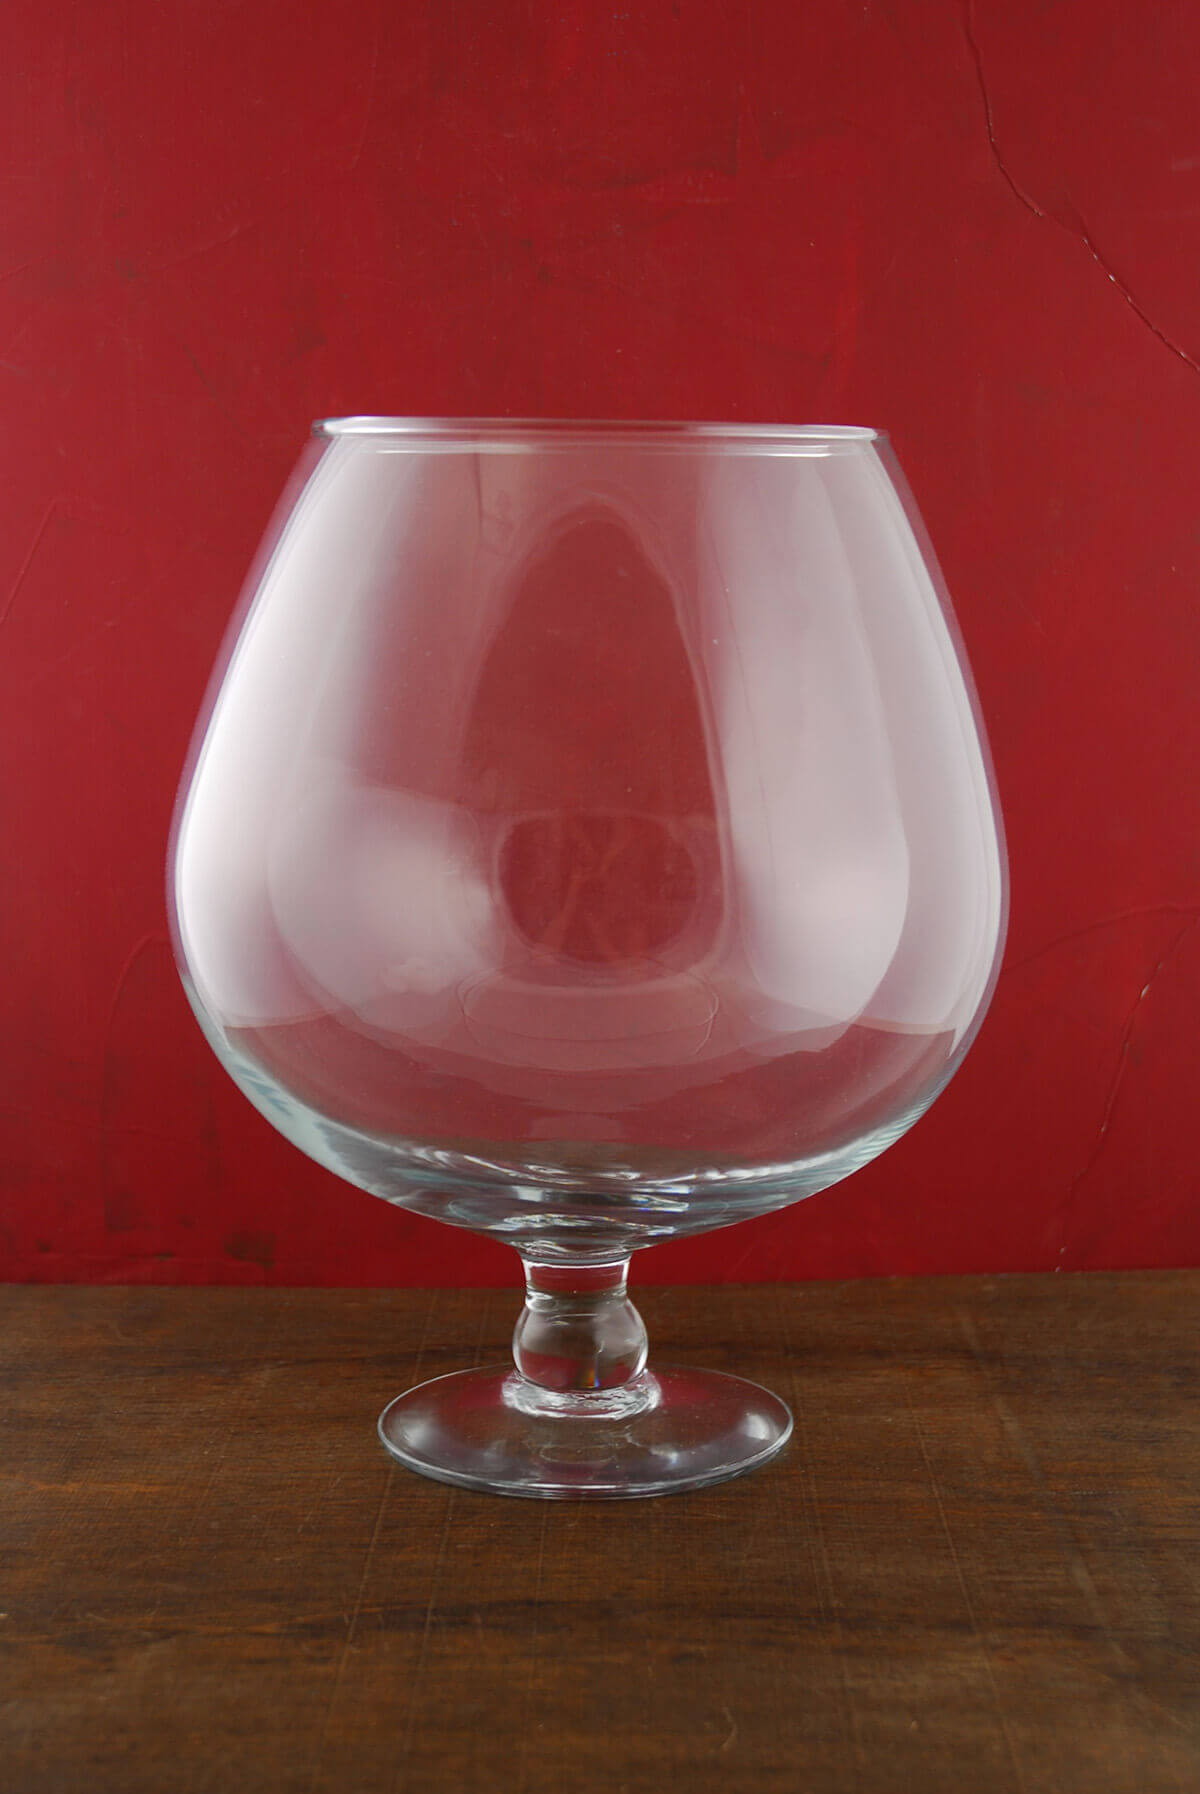 Large Brandy Glasses For Table Decorations